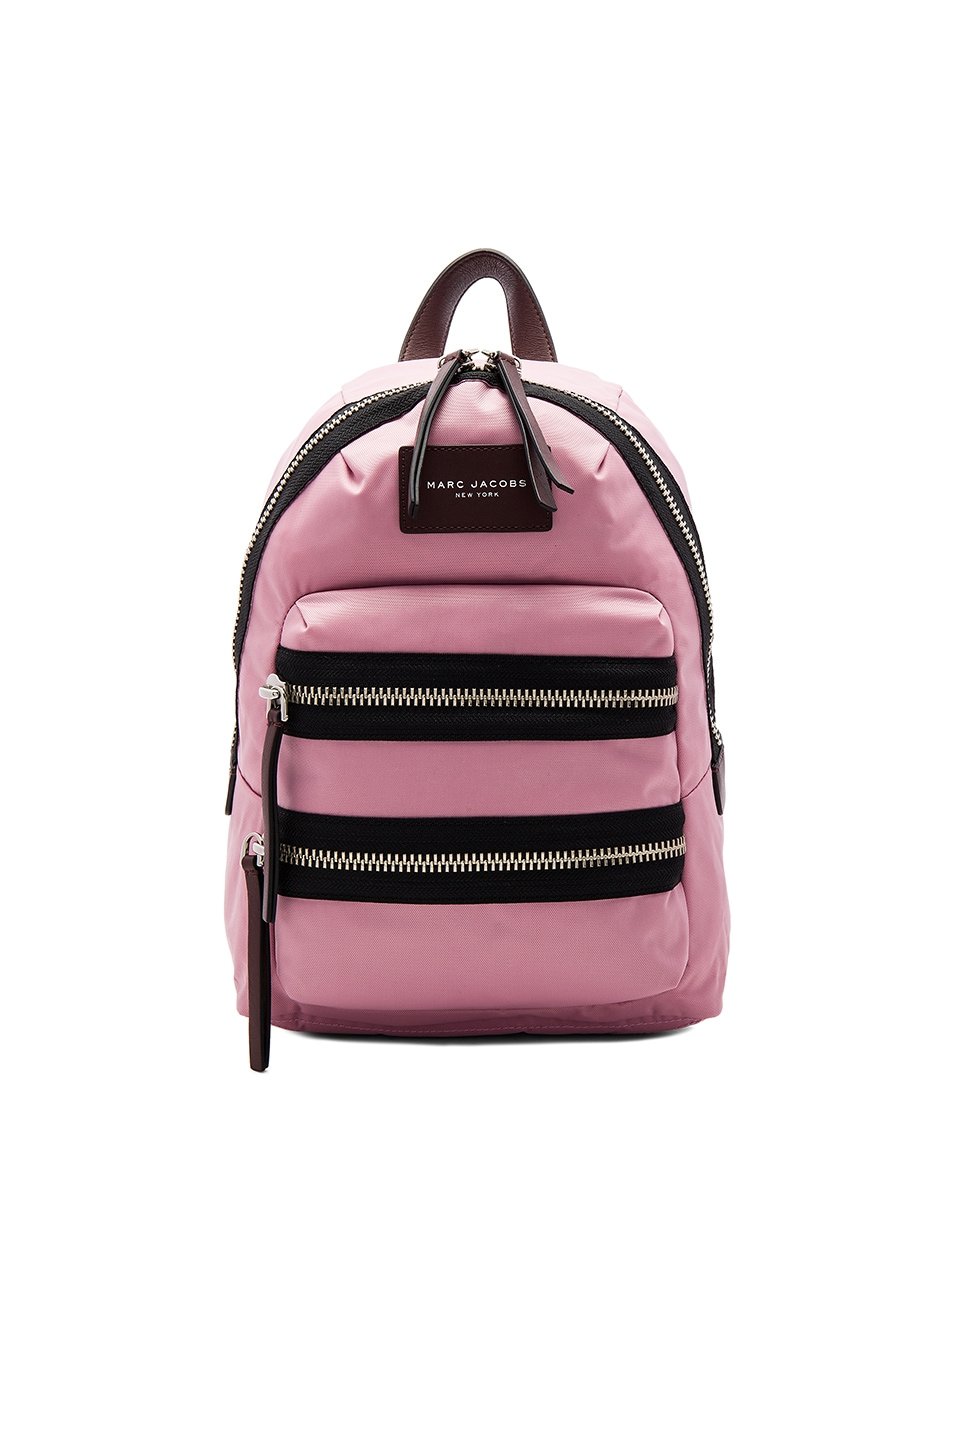 Marc Jacobs Nylon Biker Mini Backpack in Pink Fleur